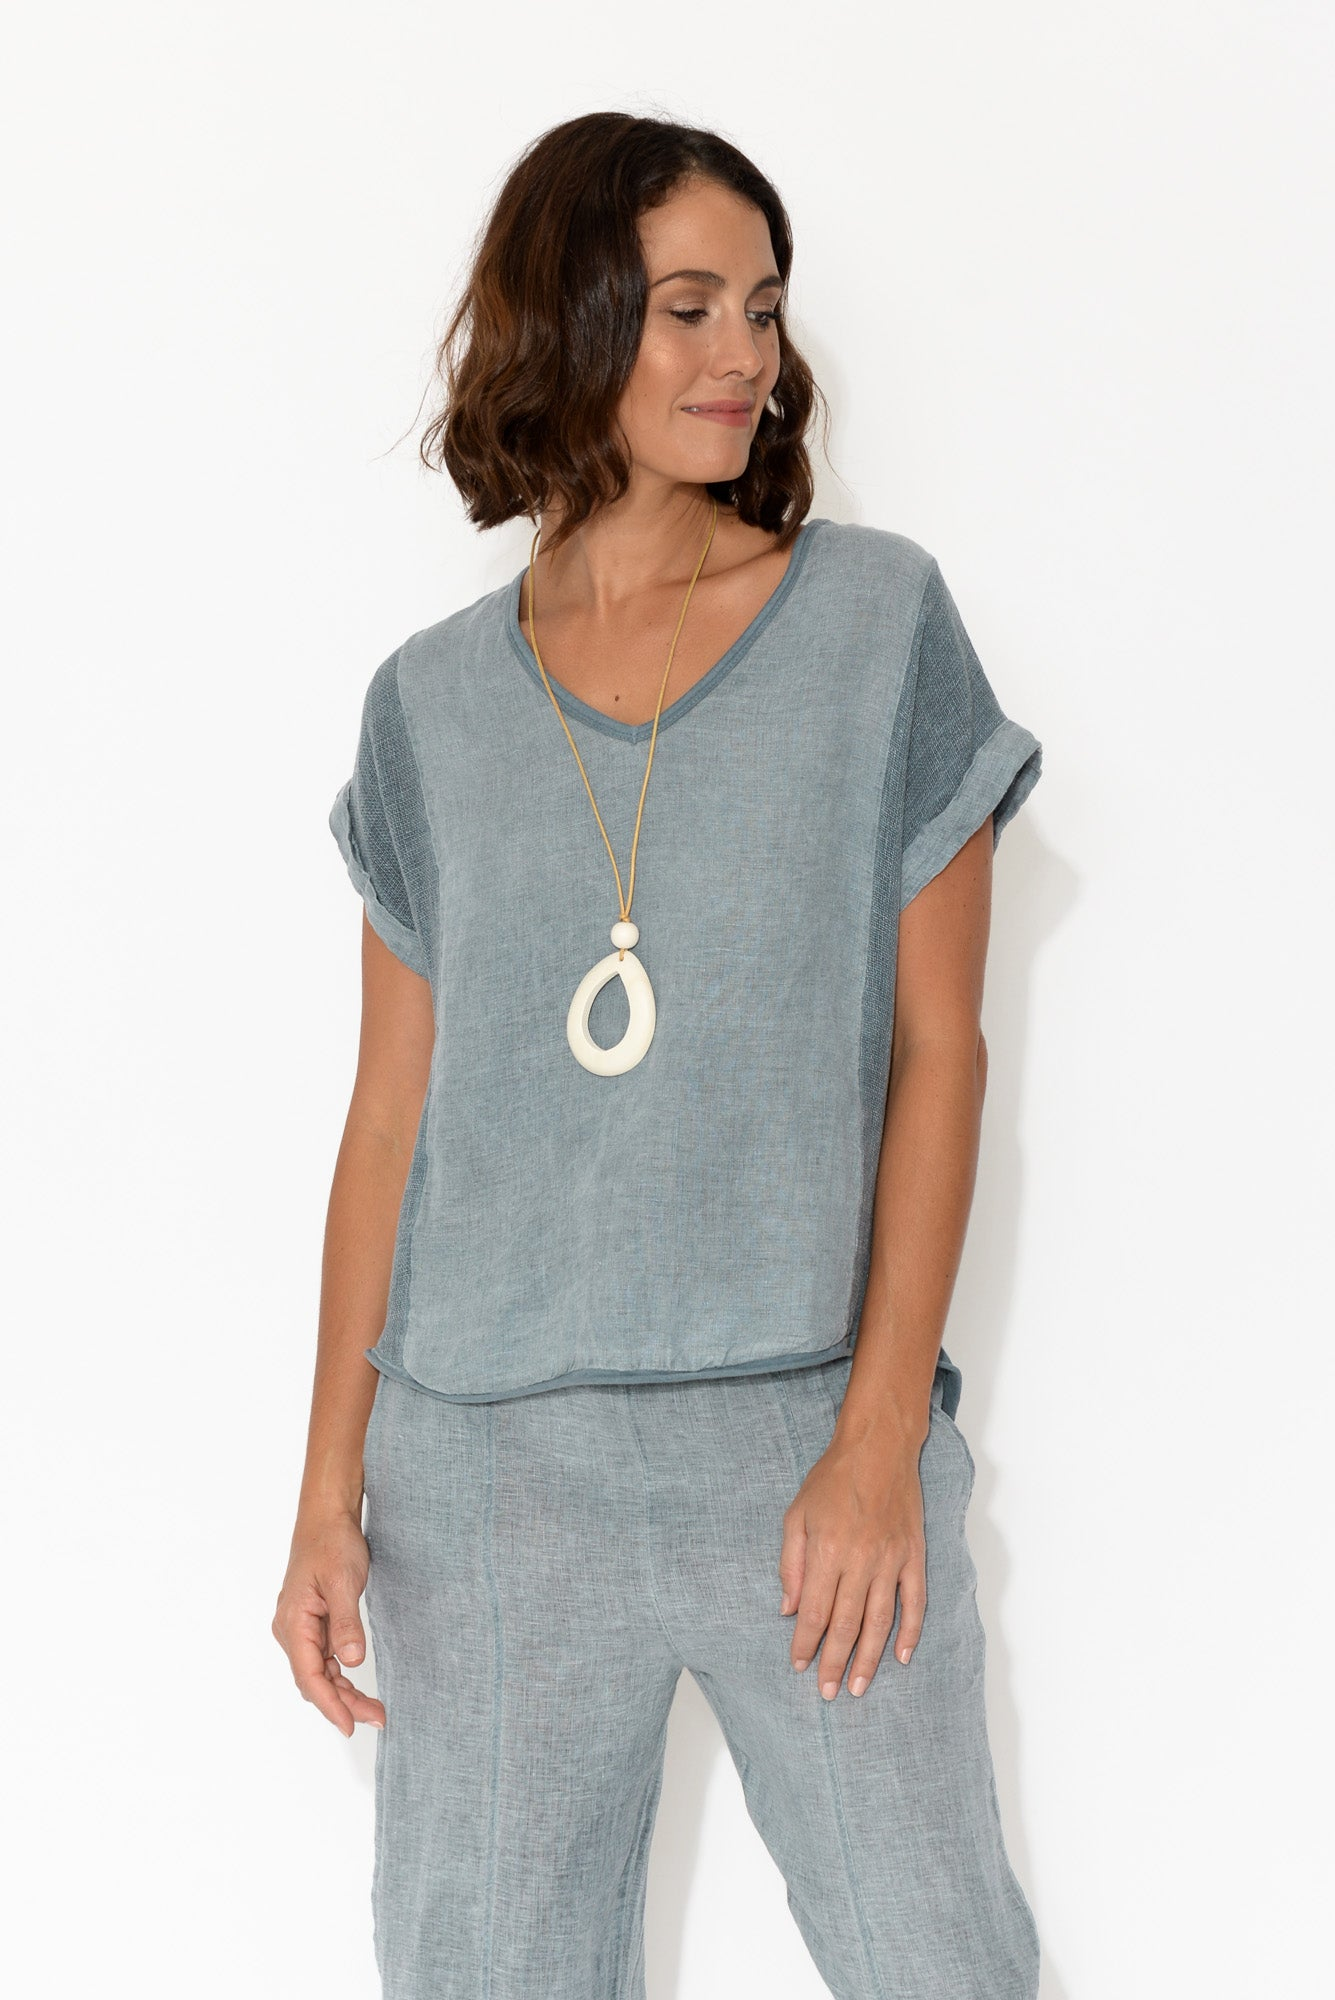 Dorian Blue Linen Top